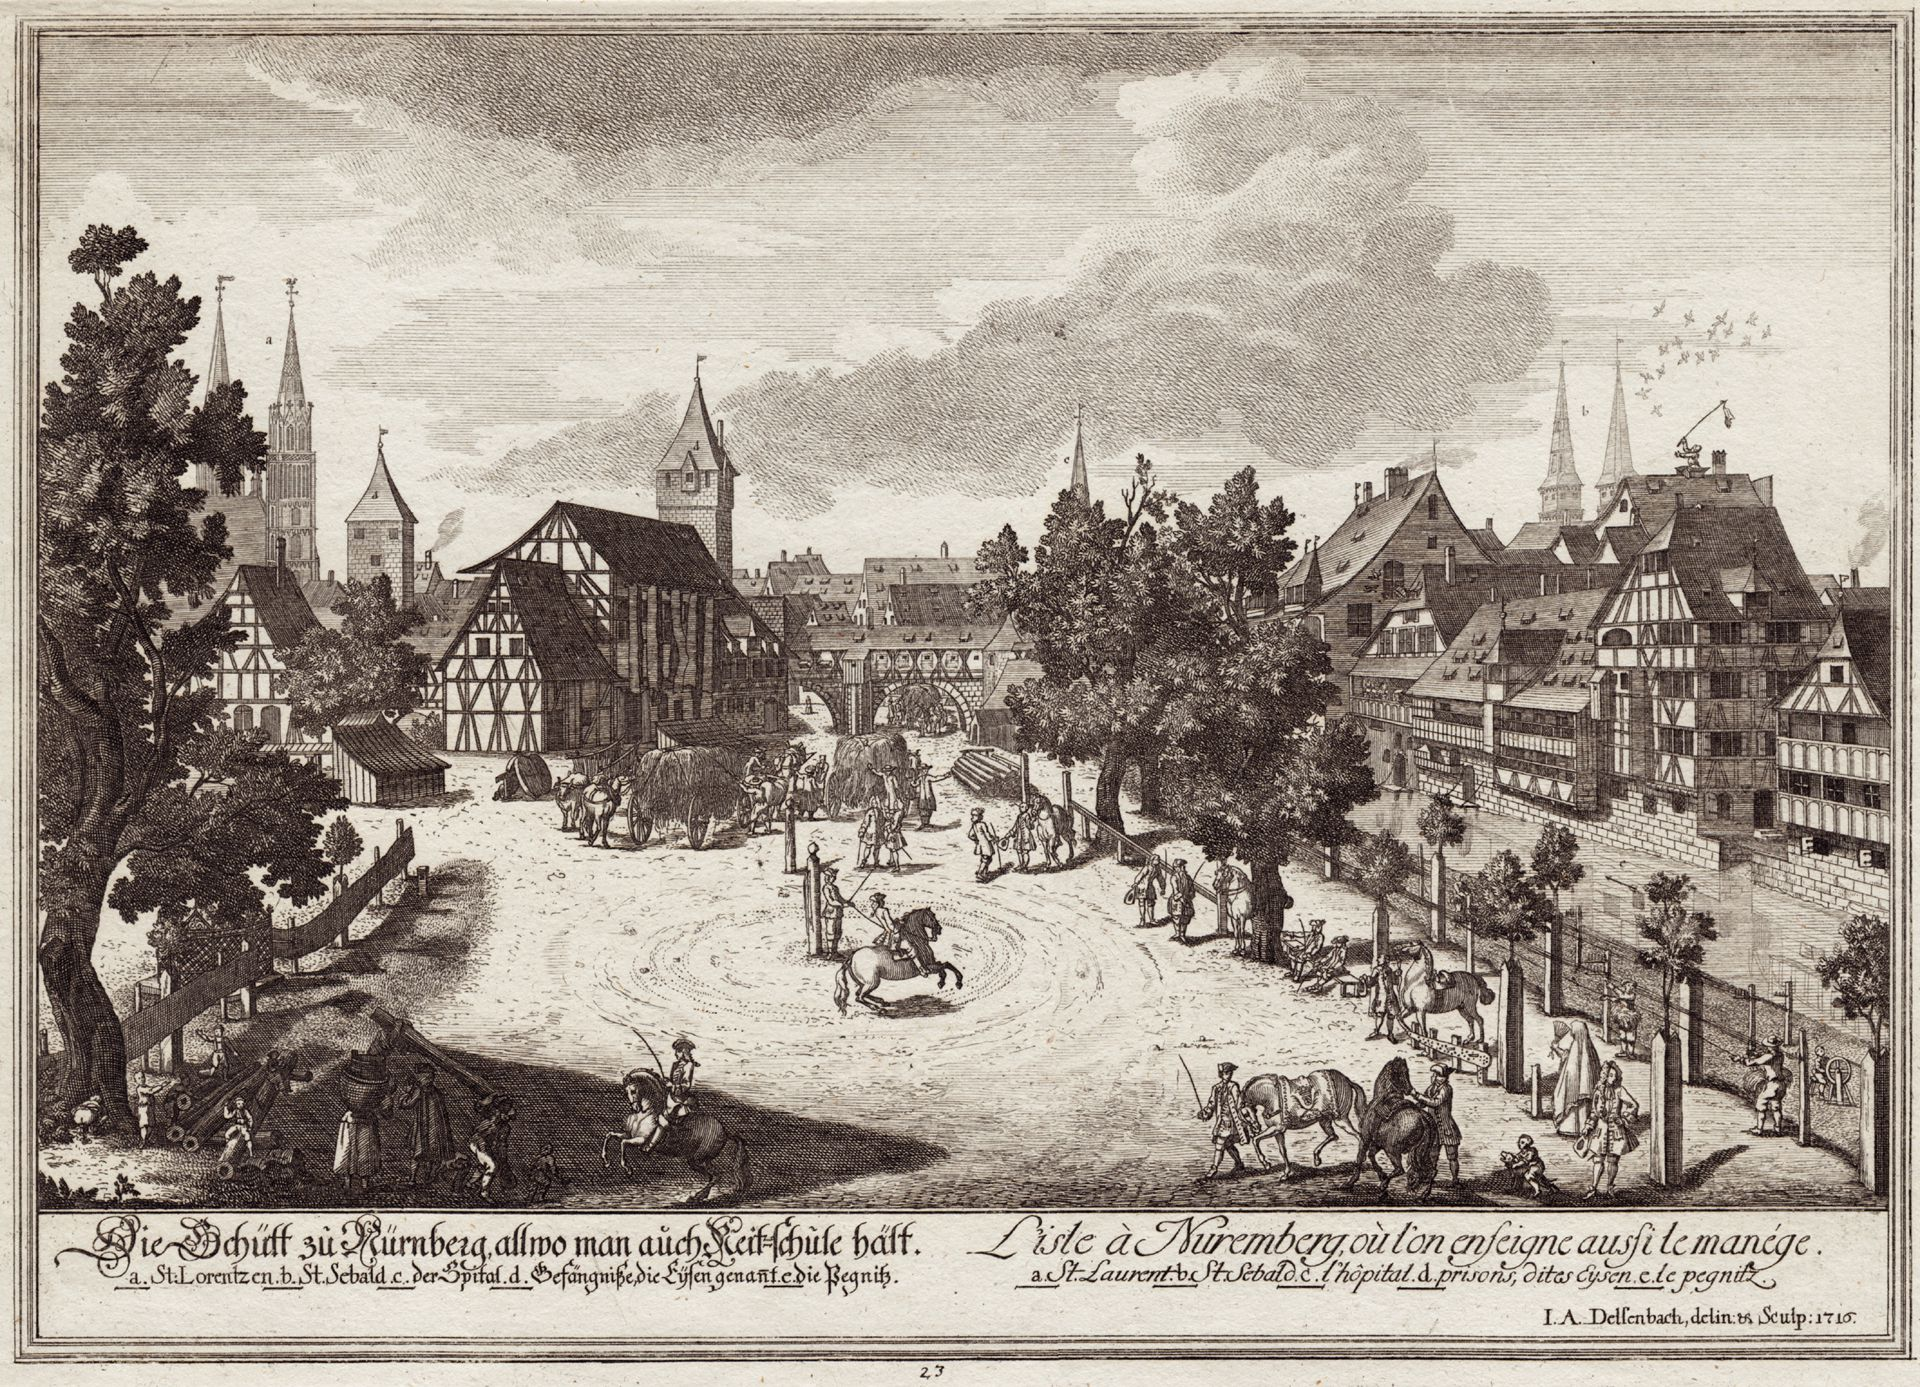 The island called Schutt in Nuremberg where Riding School is held General view